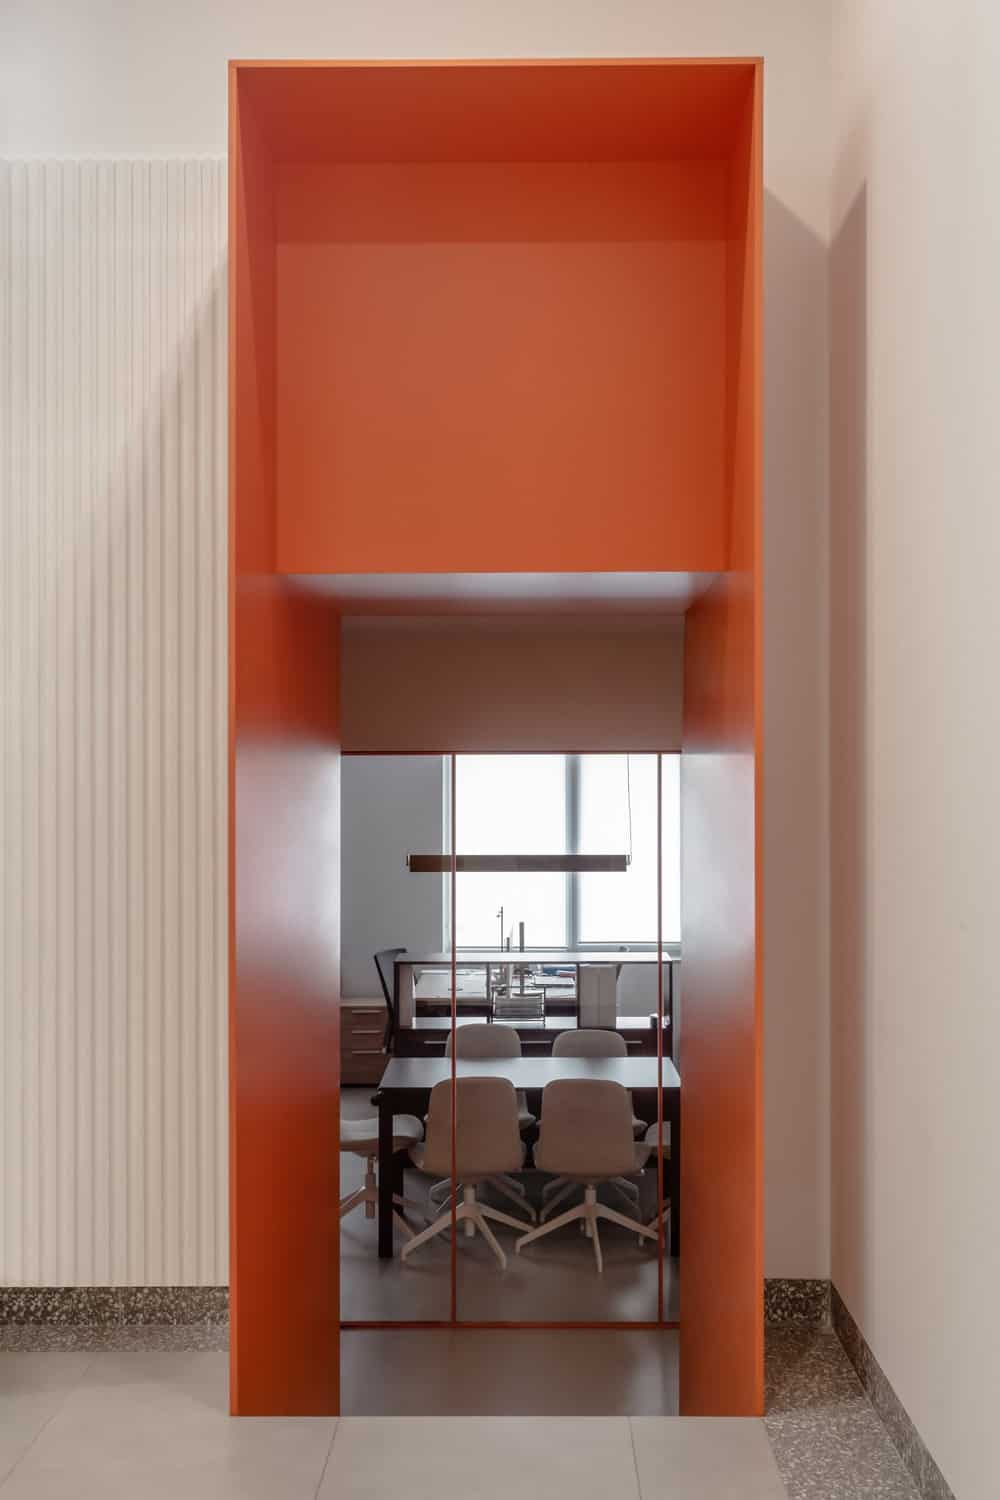 This is a look at the orange entryway that leads to more office space with large wooden conference table and desks at the far side.